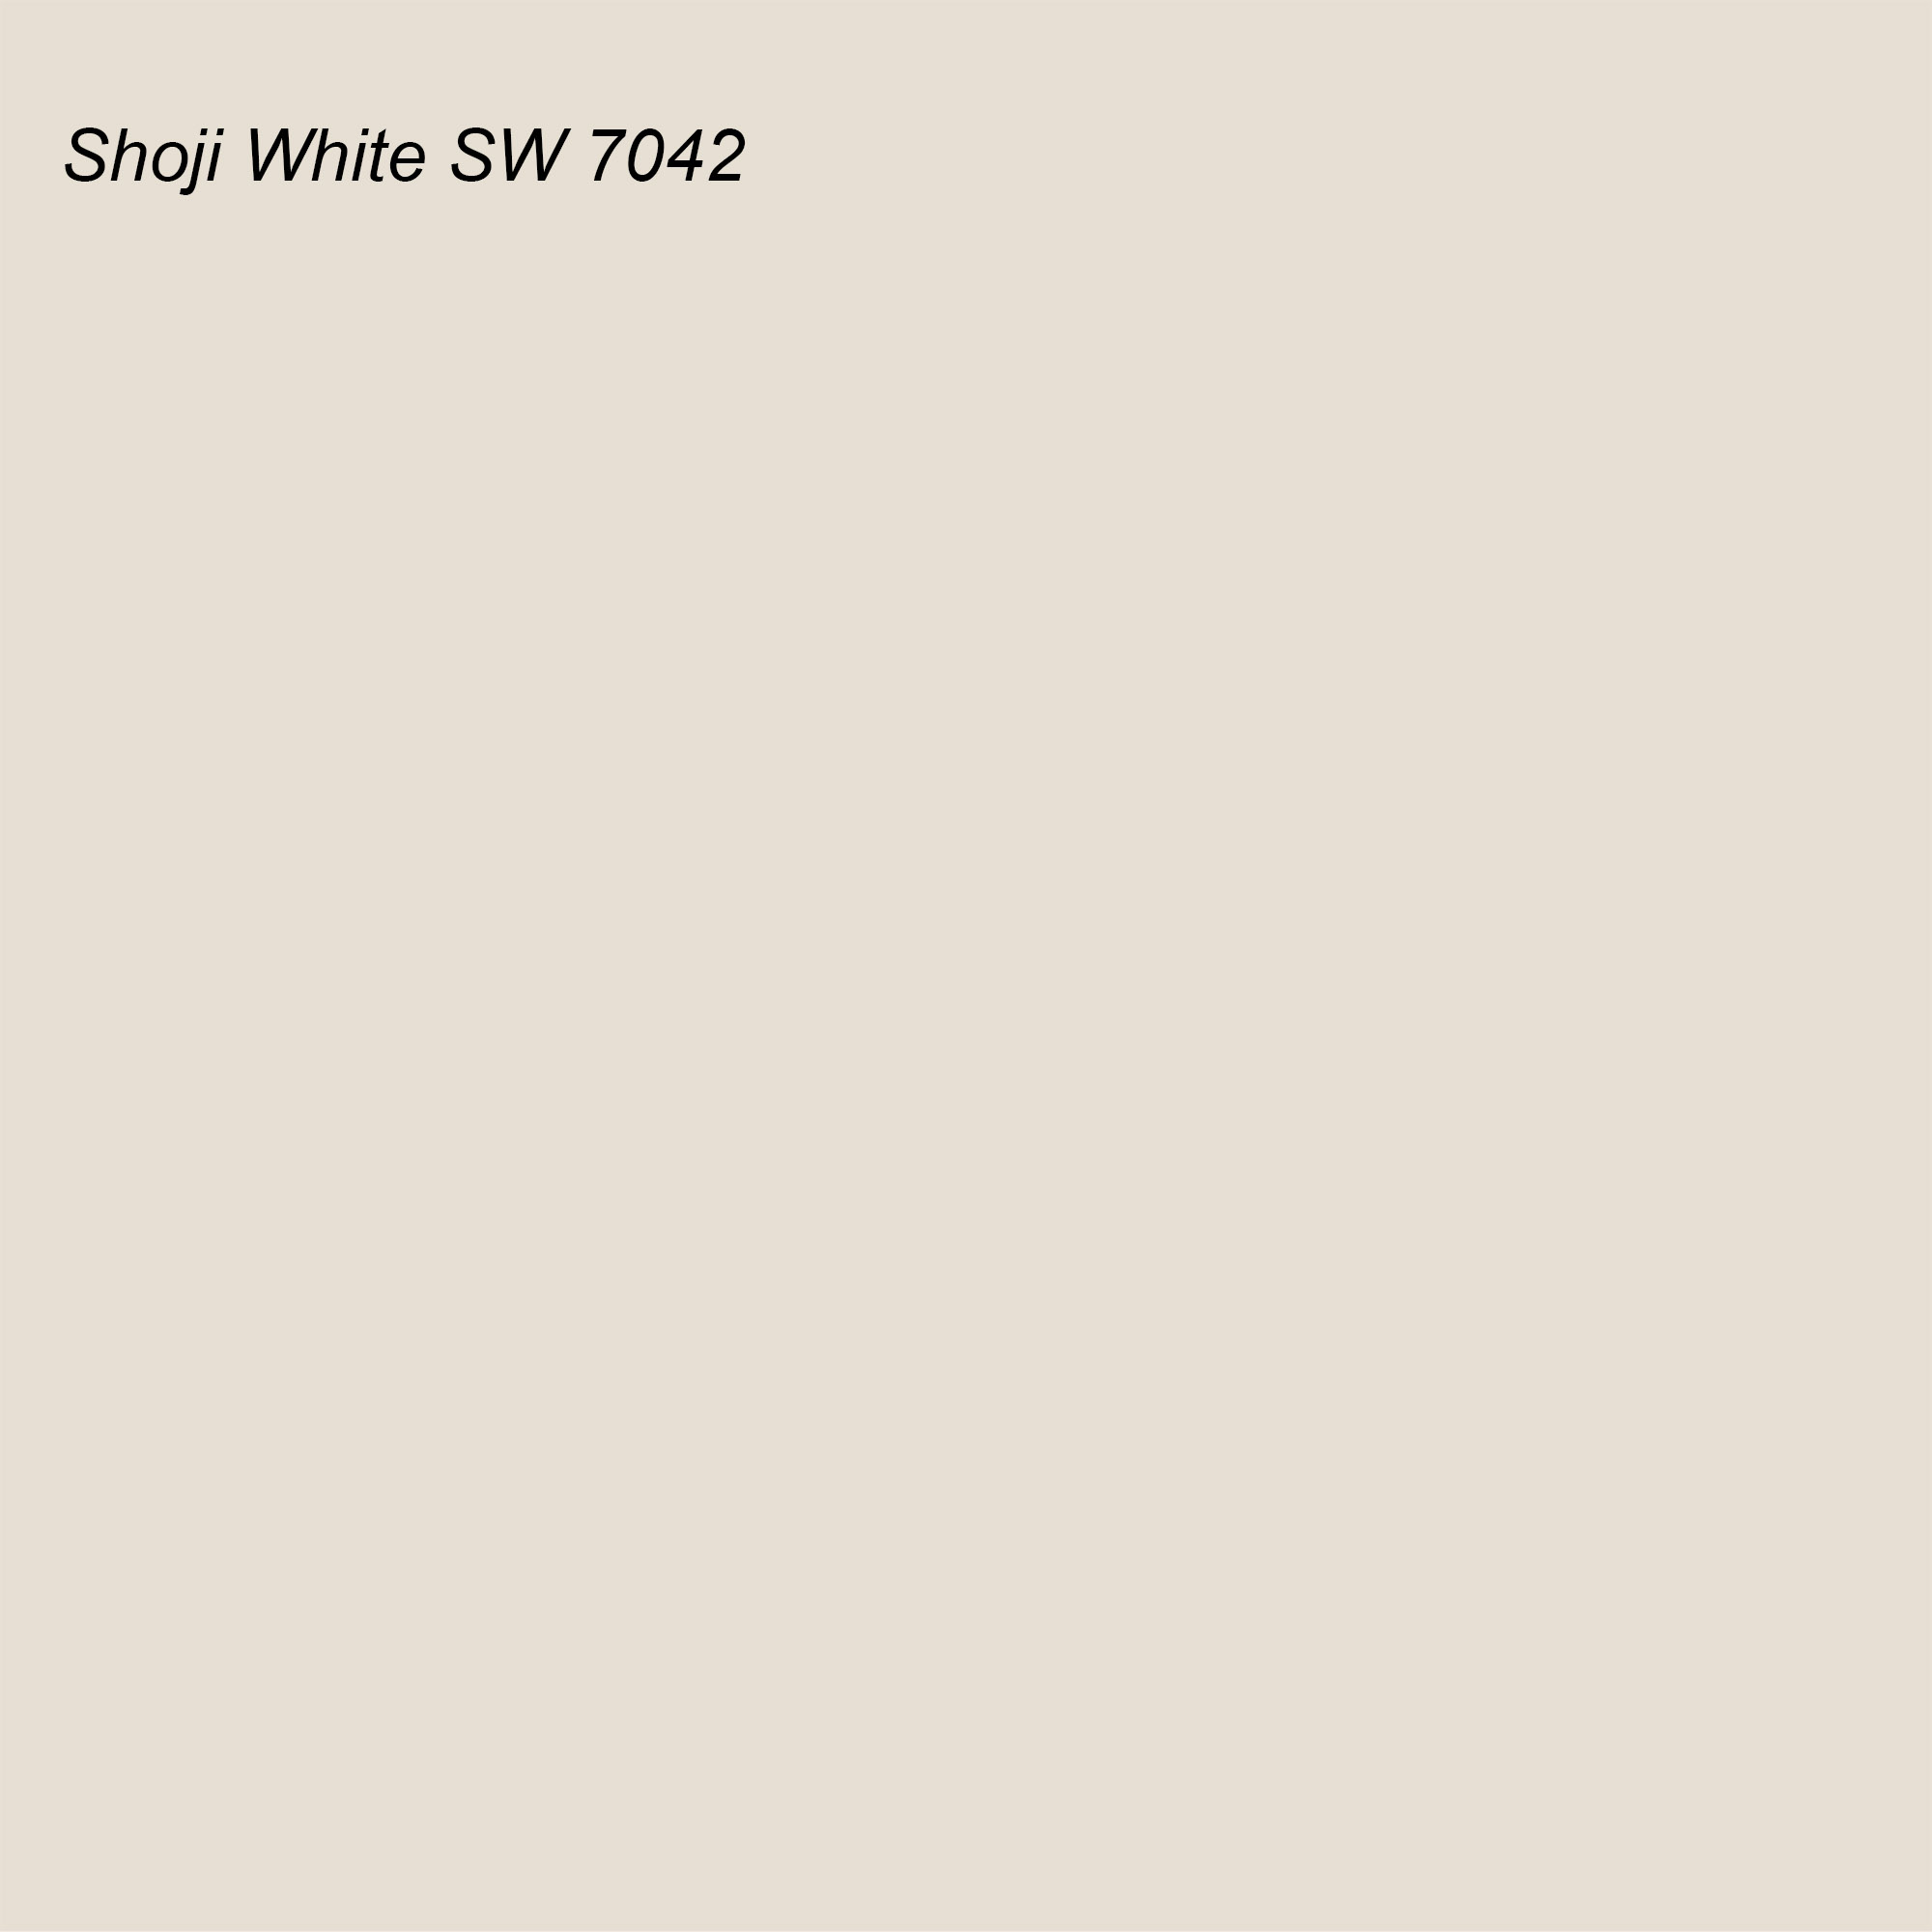 Sherwin Williams 2021 Color of the Year Suggested Accent Shade Shoji White SW 7042